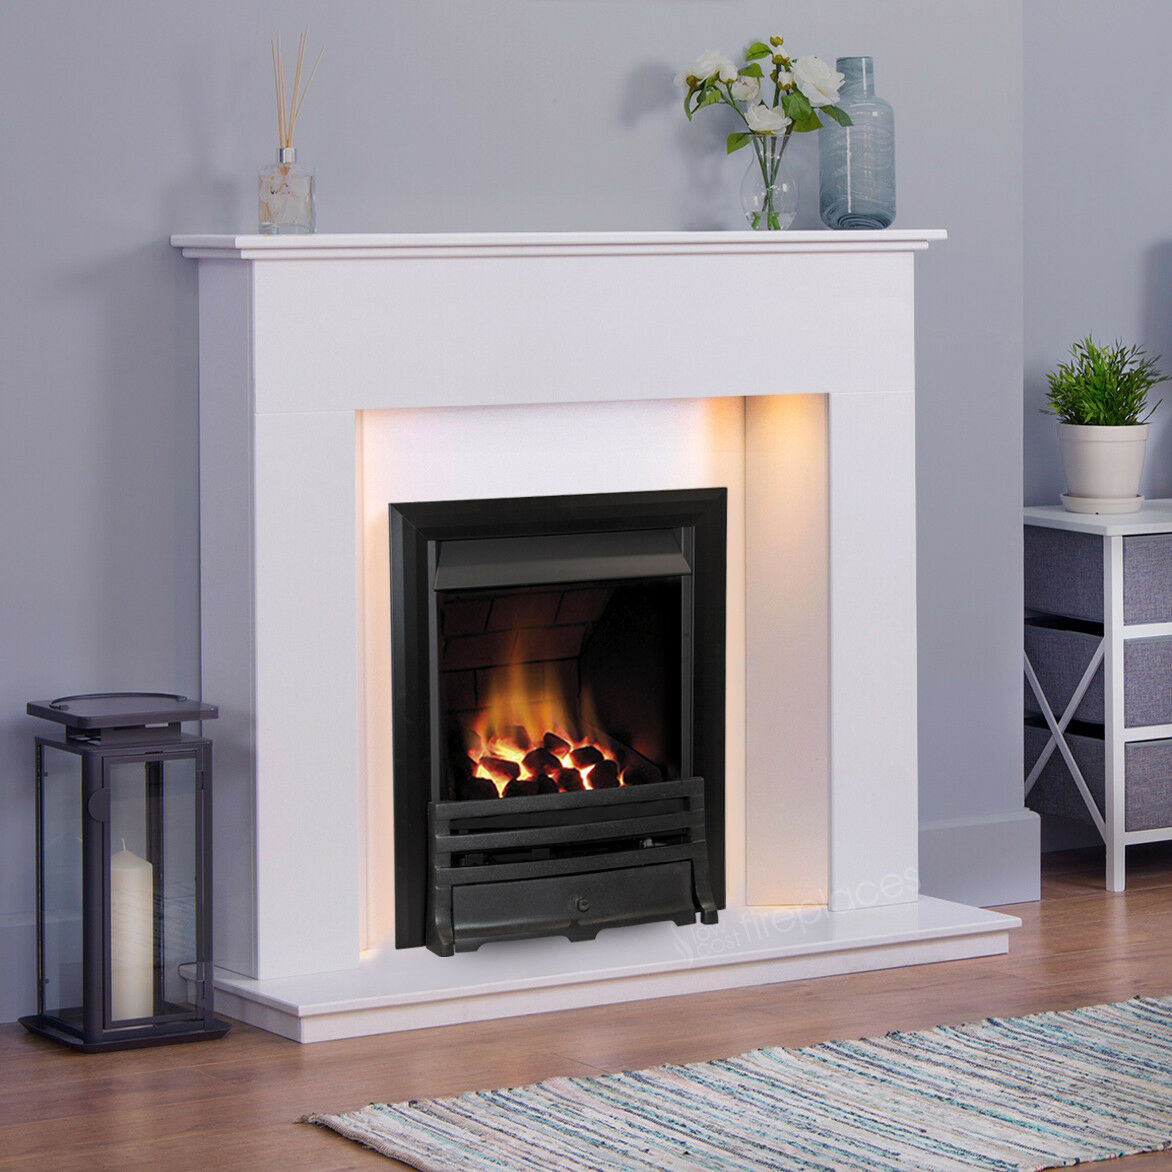 Gas White Marble Stone Wall Angled Surround Lights Black Fire Fireplace Suite Ebay